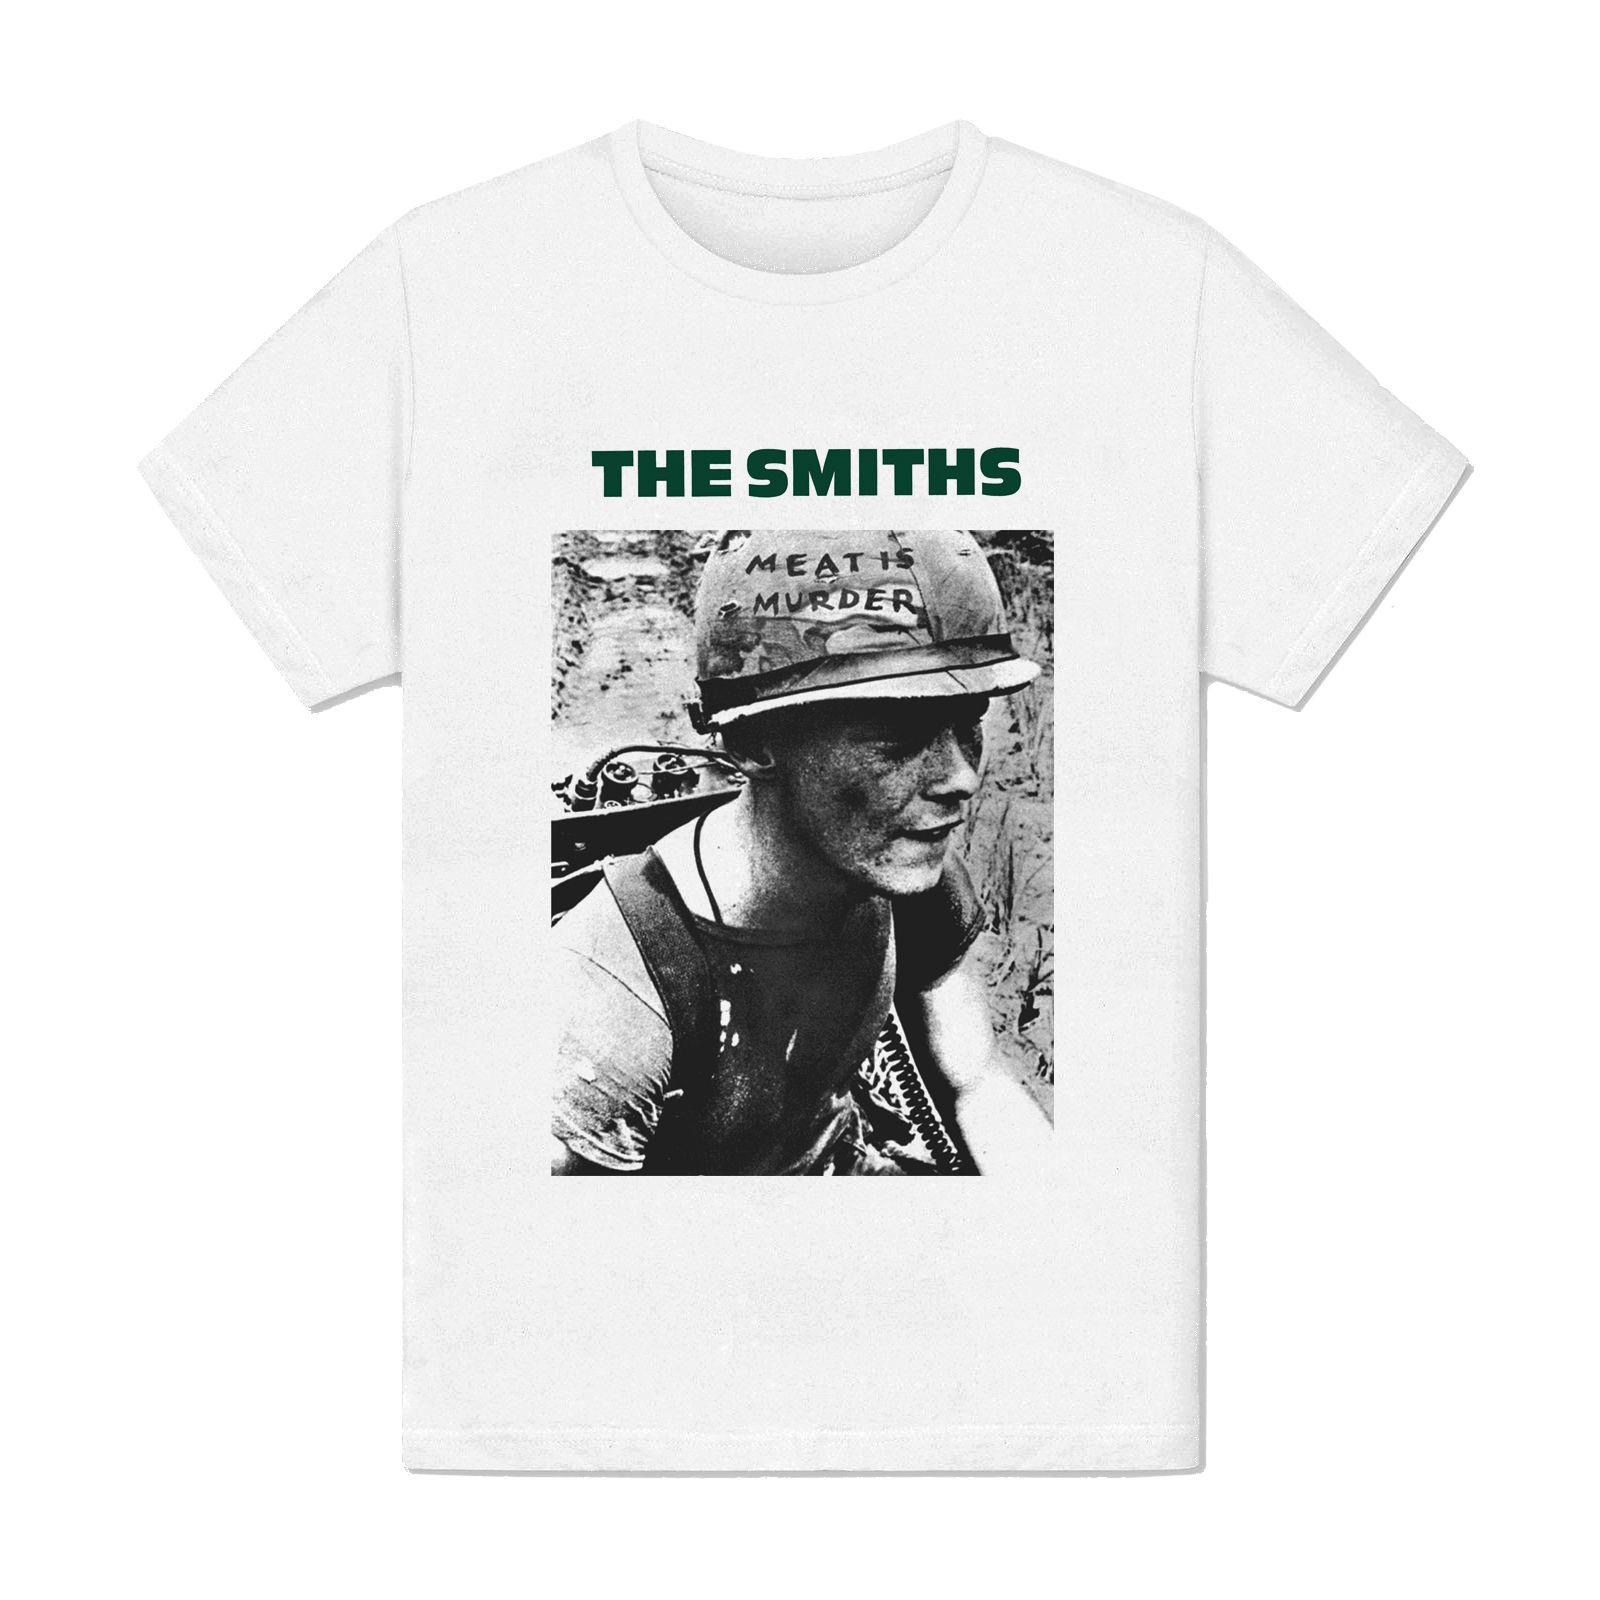 051197c5efae19 T-shirt Homme Blanc - The Smiths Meat is Murder - Soldat Album Musique  Londres Online with  12.99 Piece on Beidhgate02a s Store